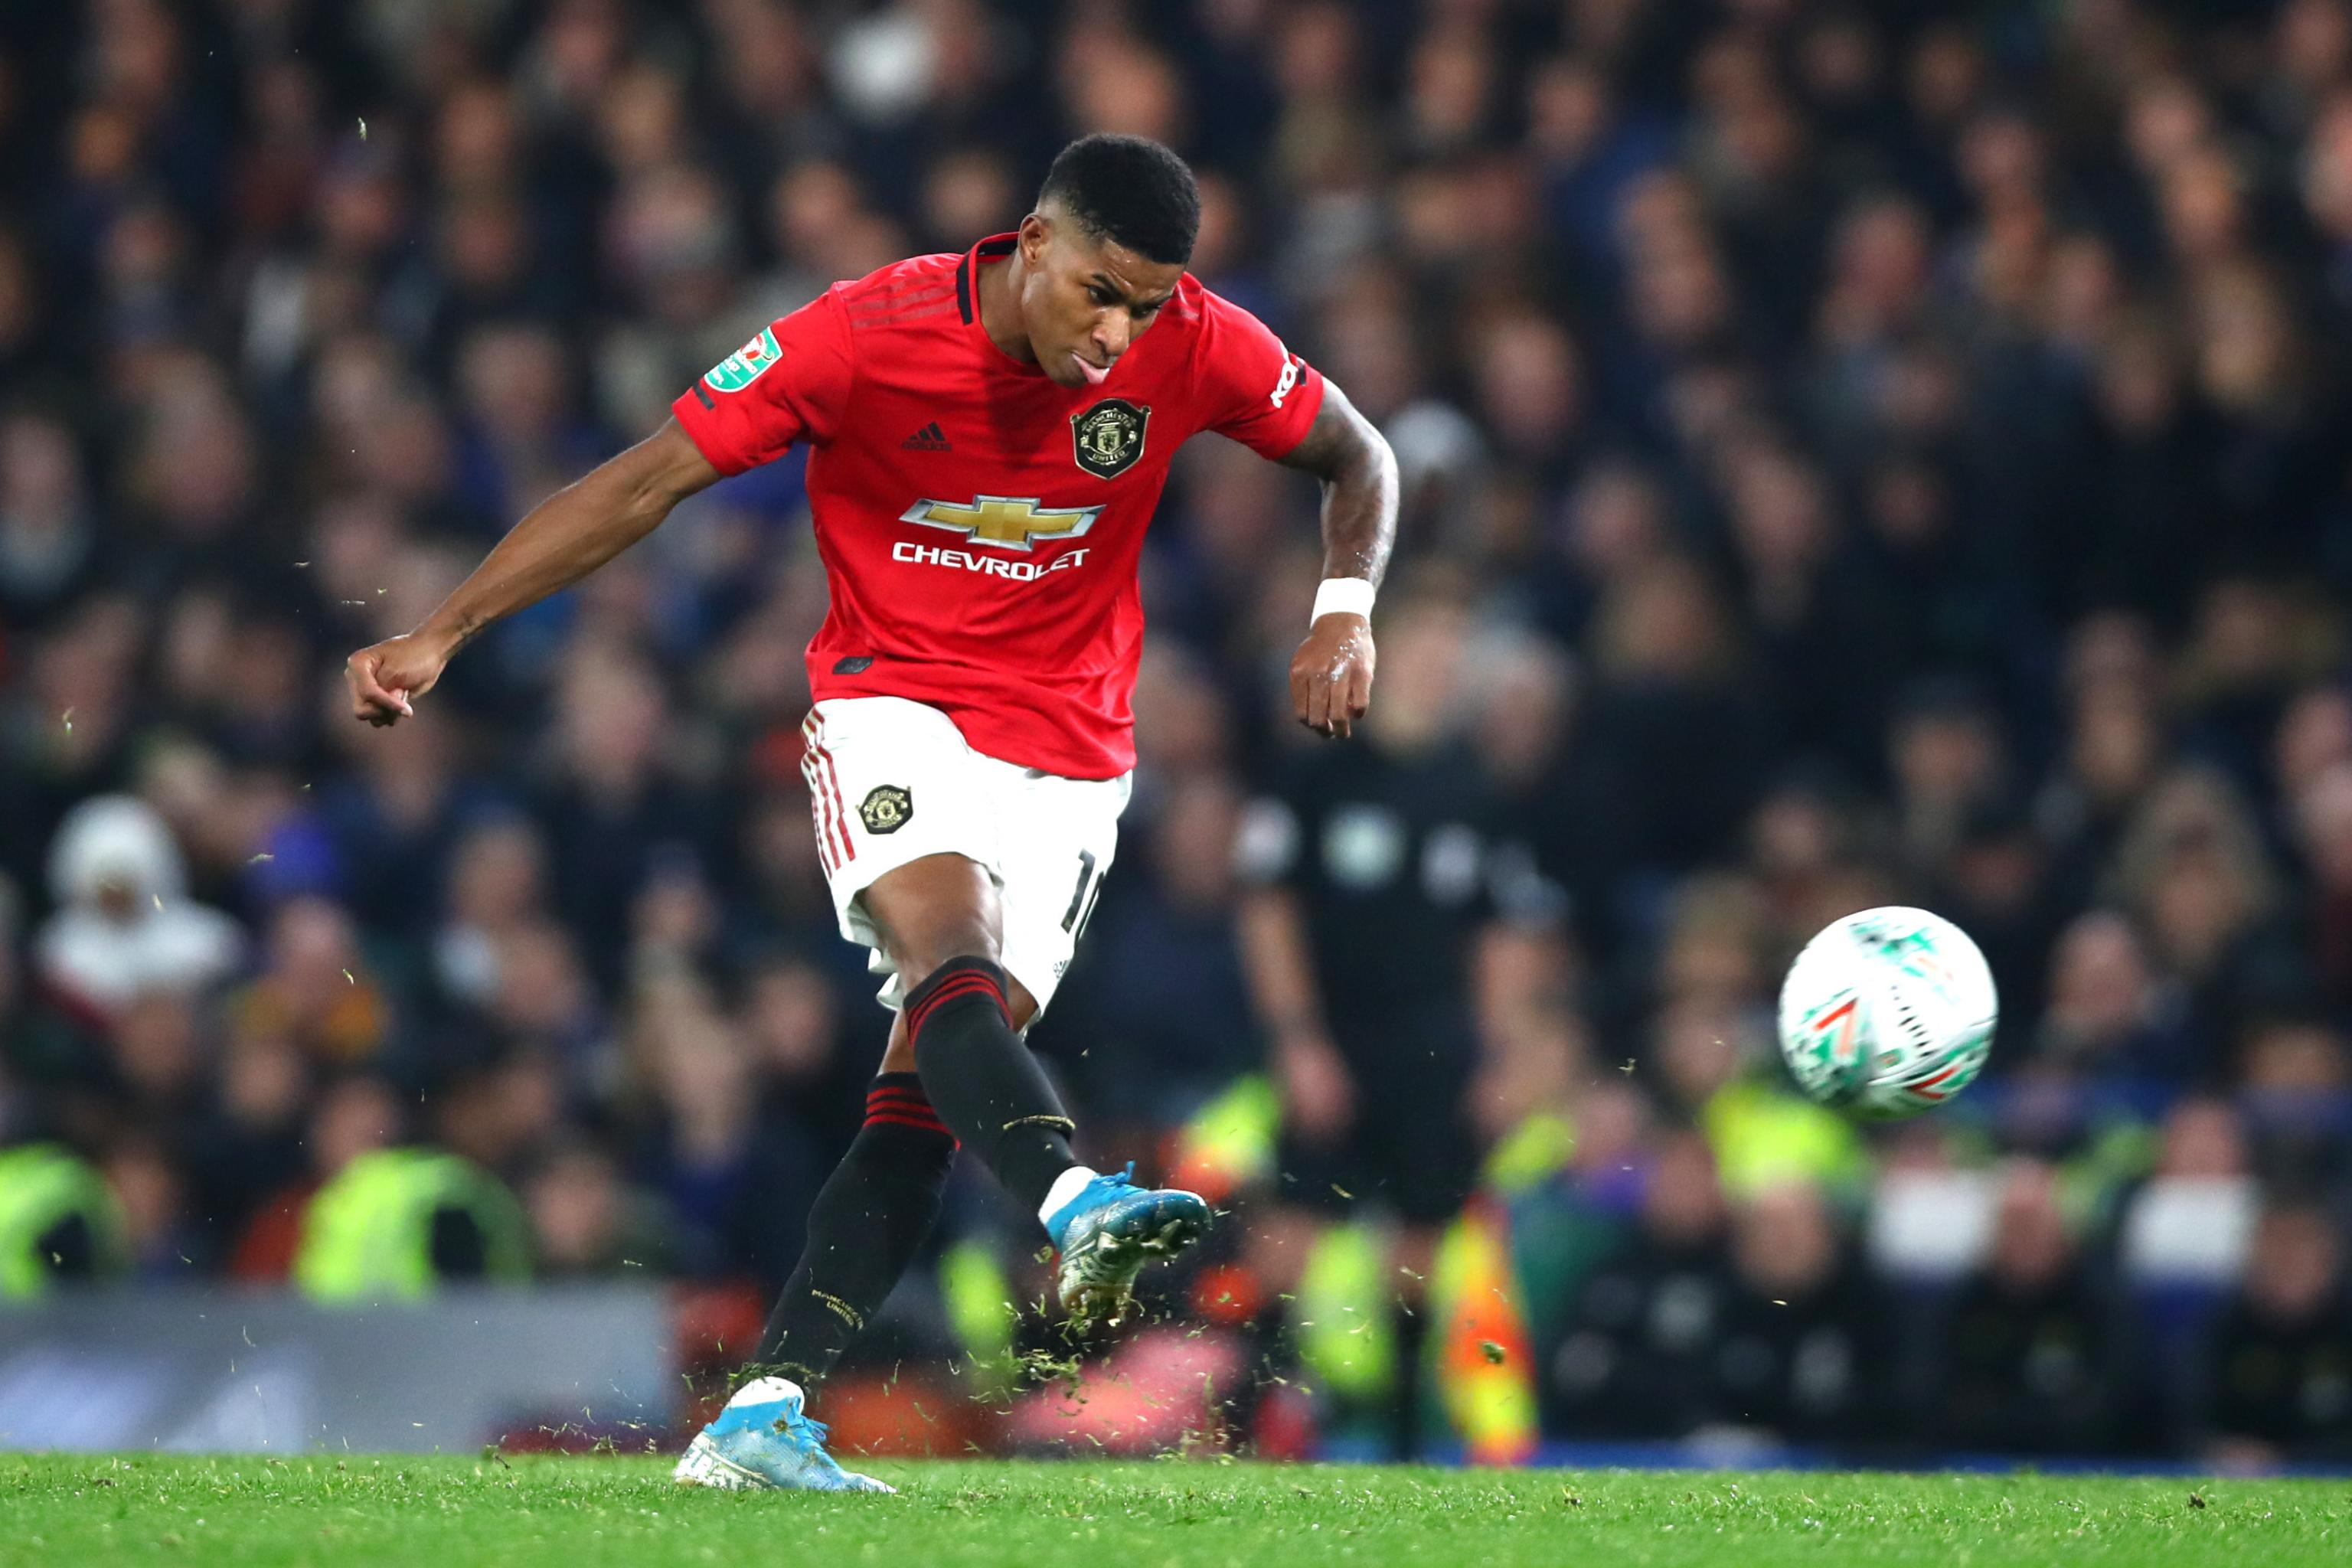 Marcus Rashford S Late Free Kick Leads Manchester United Past Chelsea In Efl Cup Bleacher Report Latest News Videos And Highlights